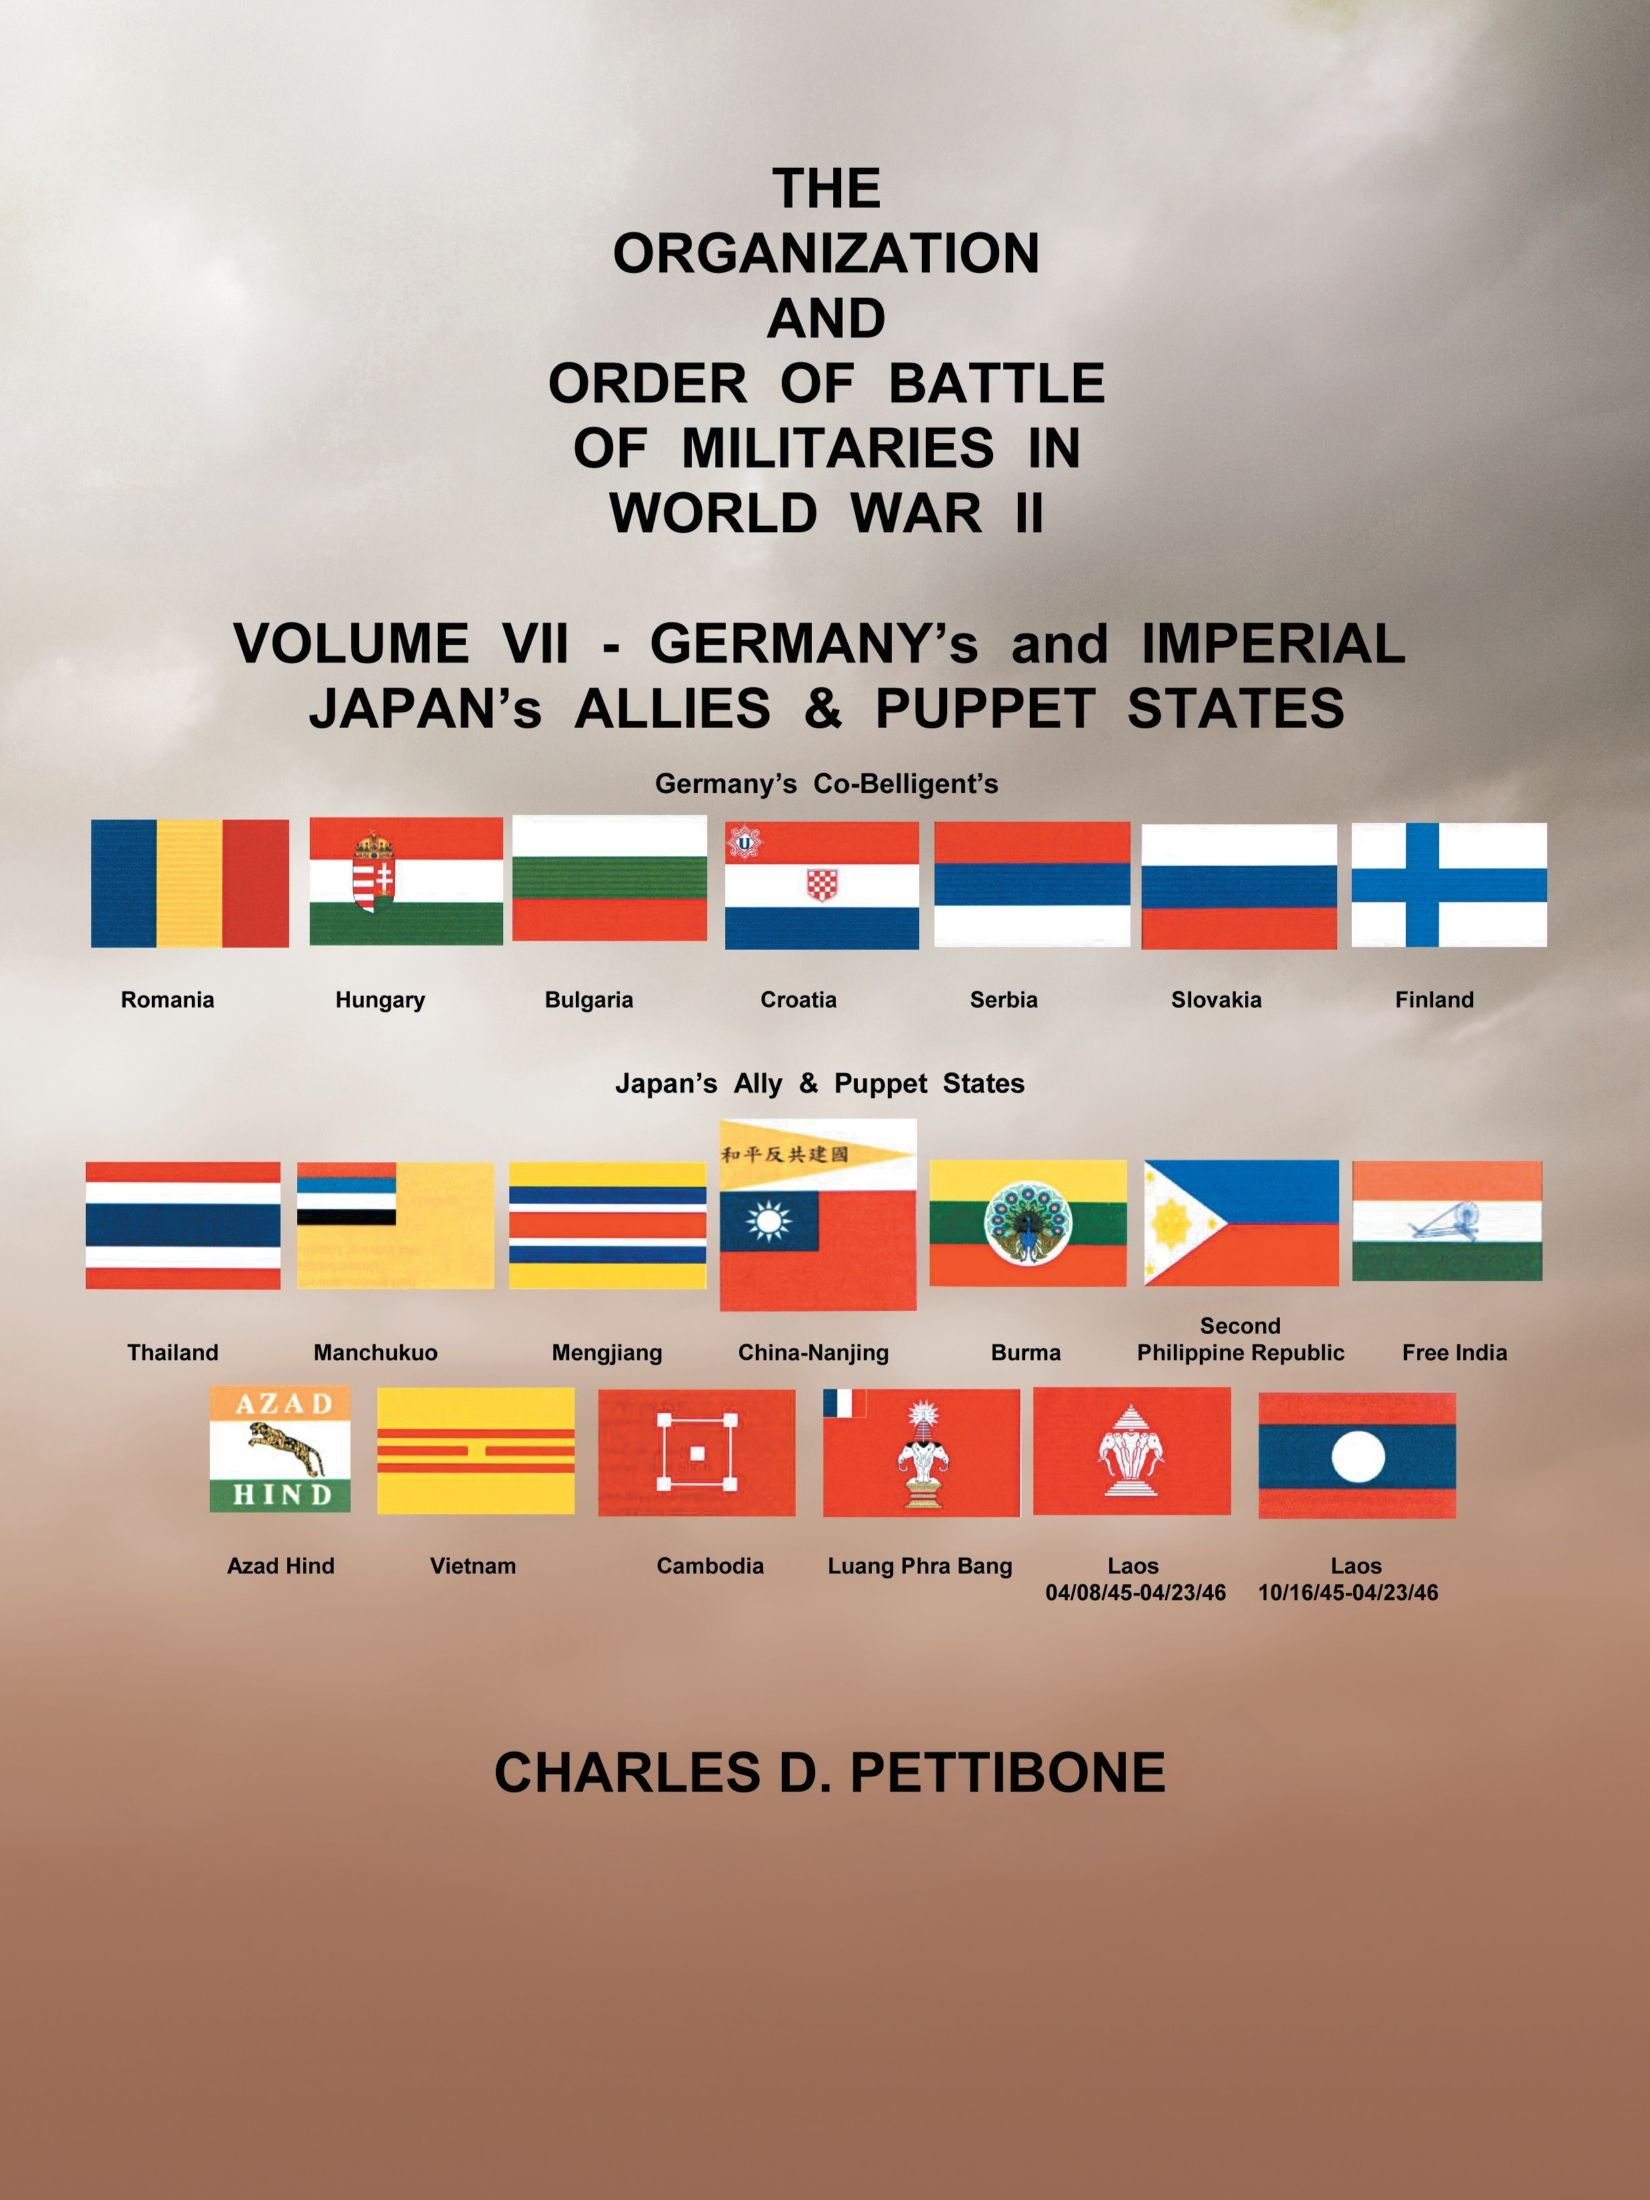 The Organization and Order Of Battle Of Militaries In World War II: Volume VII - Germany's and Imperial Japan's Allies & Puppet States PDF